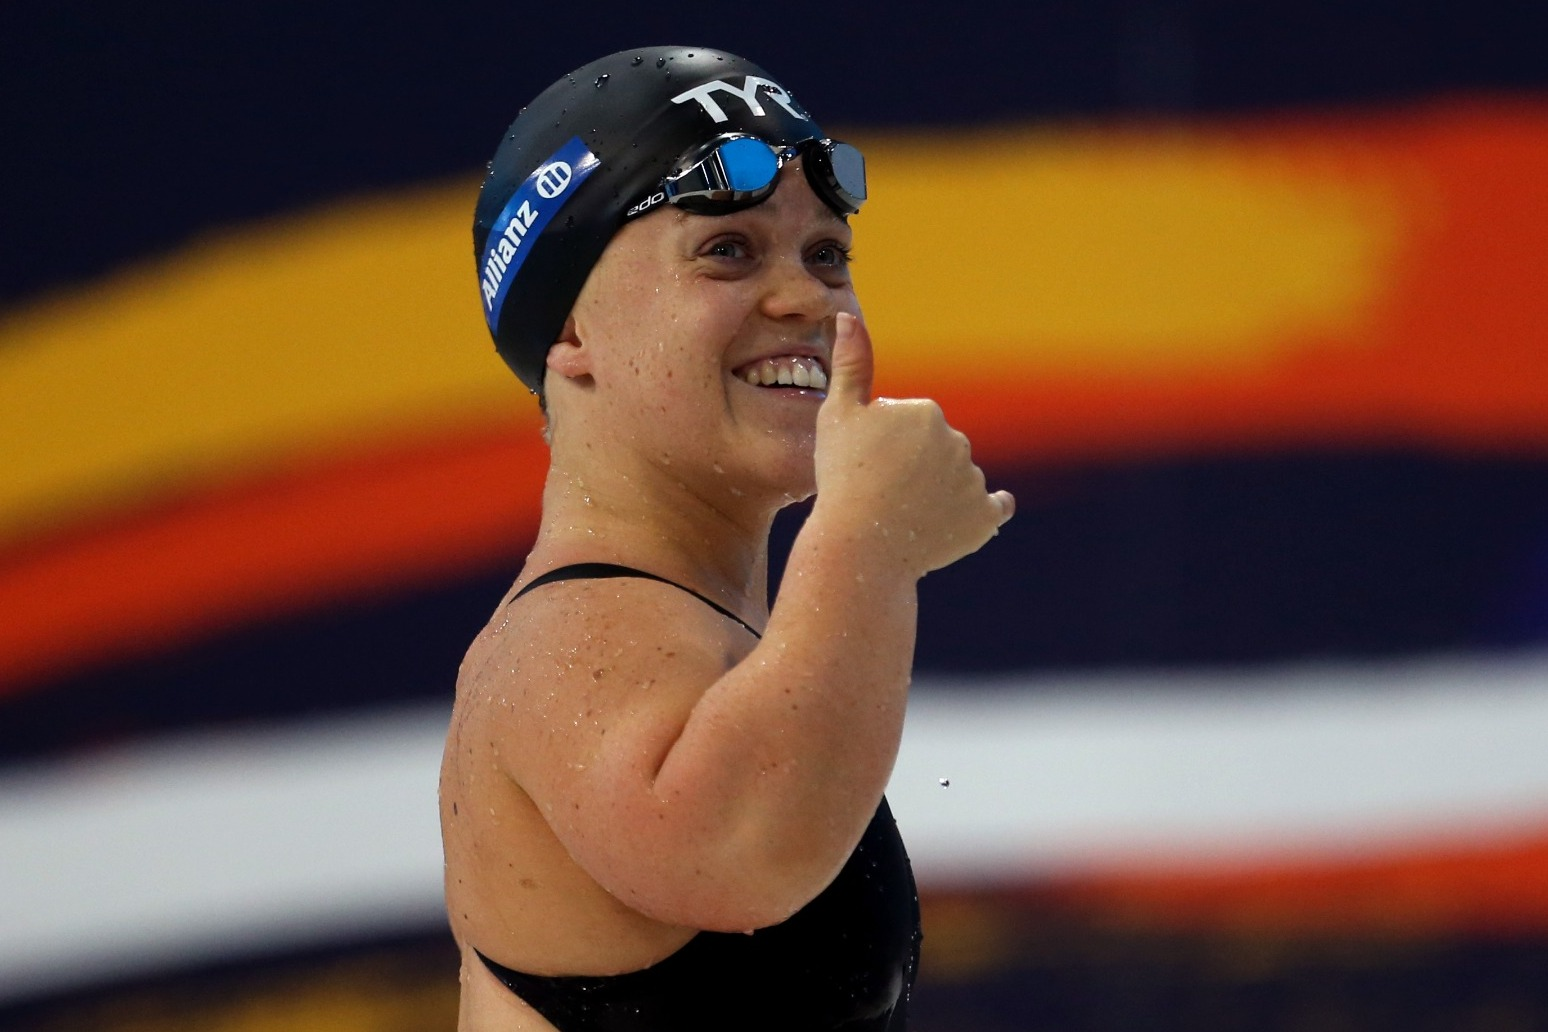 Five-time Paralympic gold medallist Ellie Simmonds retires from swimming